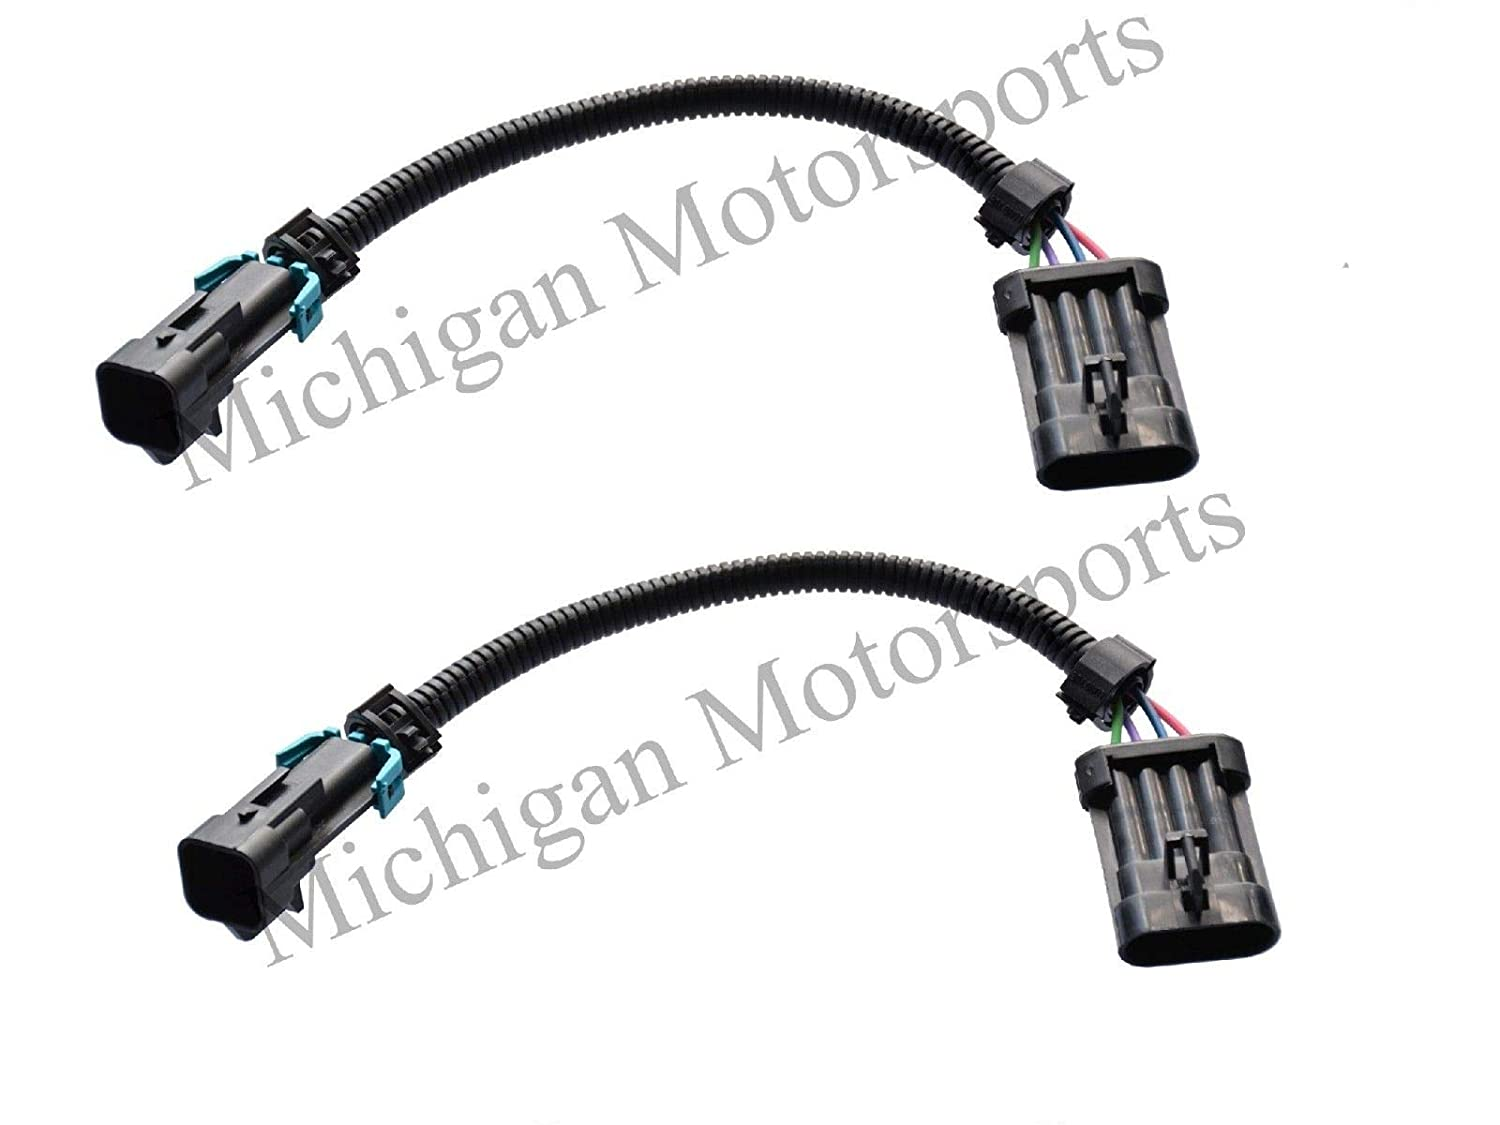 Michigan Motorsports LS1 LS6 Corvette C5 Rear to Front Primary O2 o2 Sensor Connector Adapter Harness